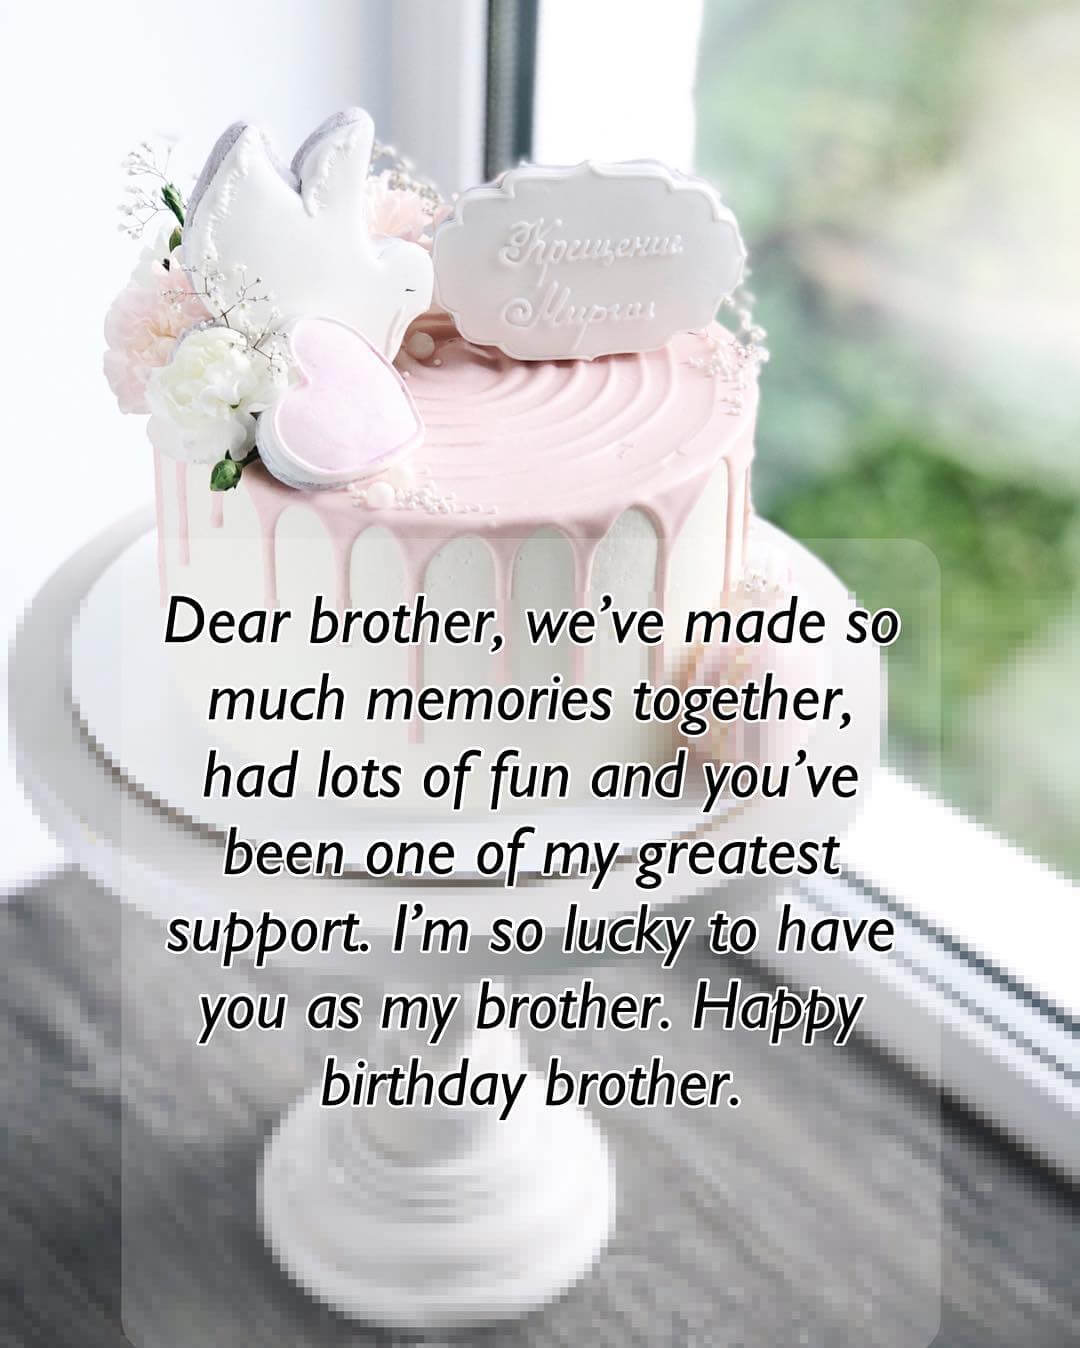 Short And Long Happy Birthday Quotes & Wishes For Brother | The